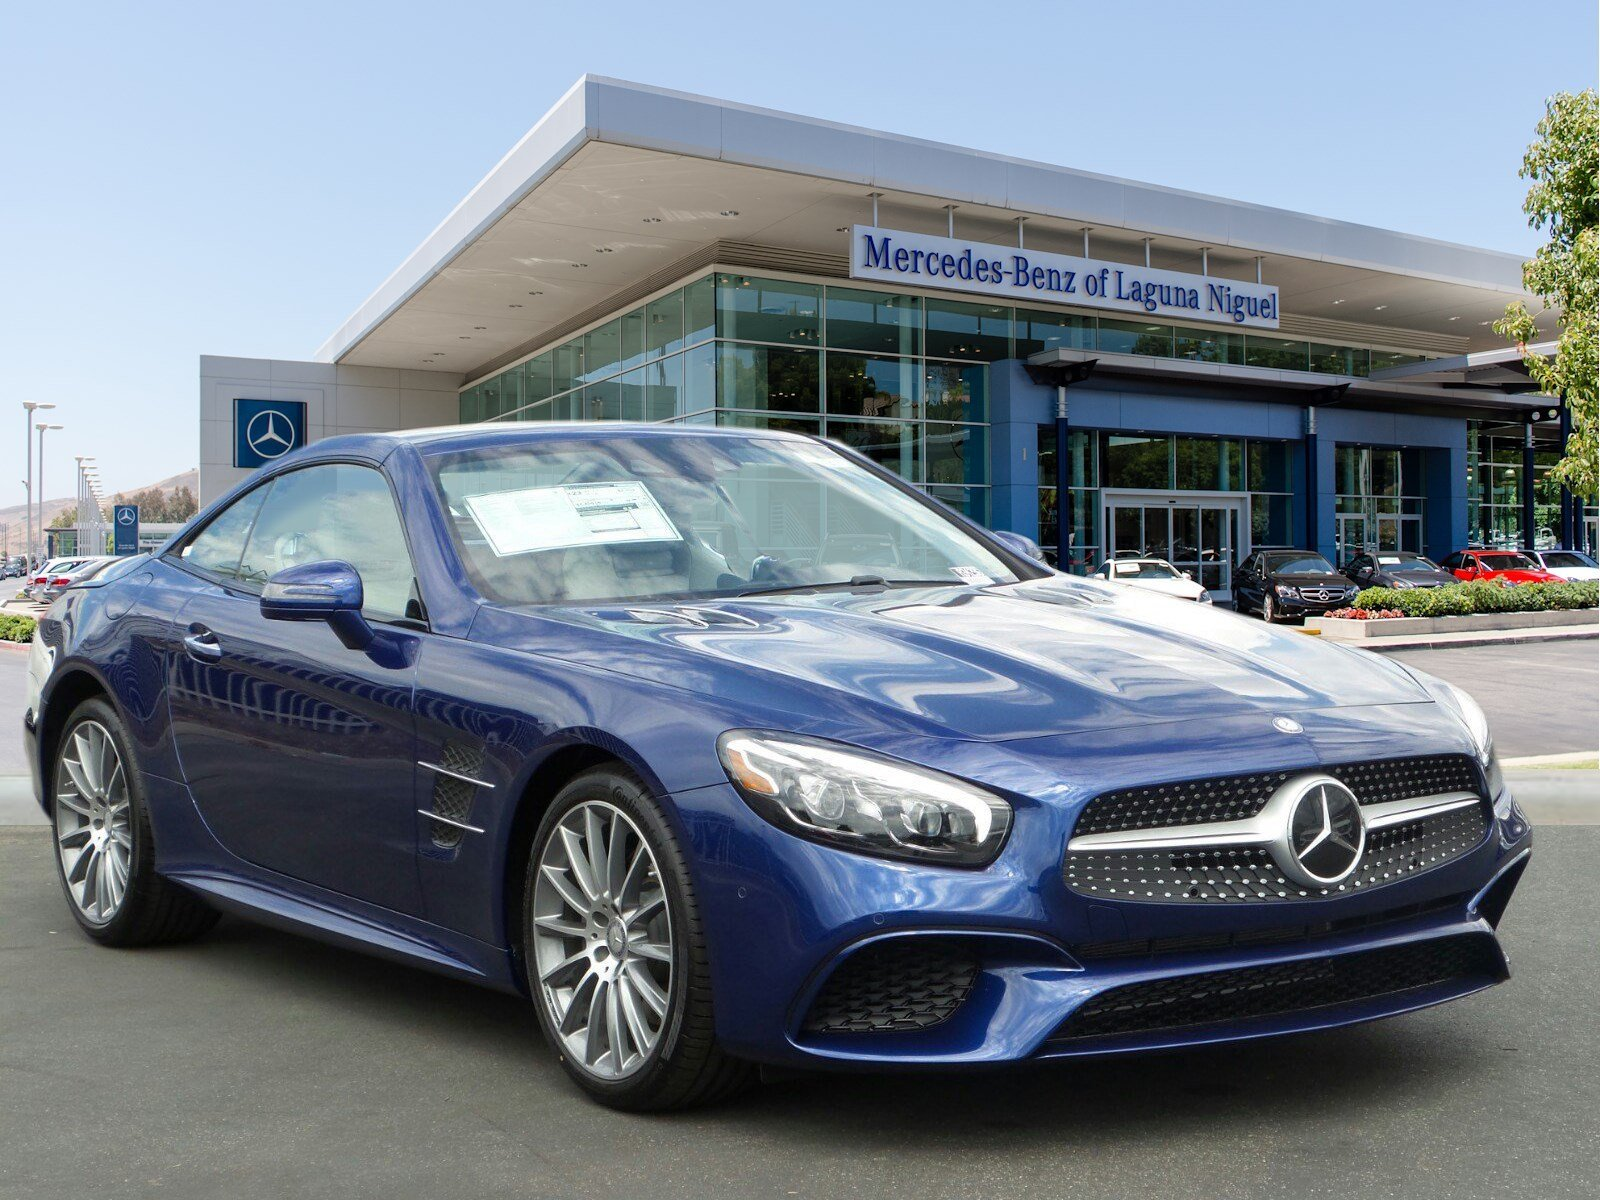 New 2017 mercedes benz sl sl450 roadster in laguna niguel for 2017 mercedes benz winter event